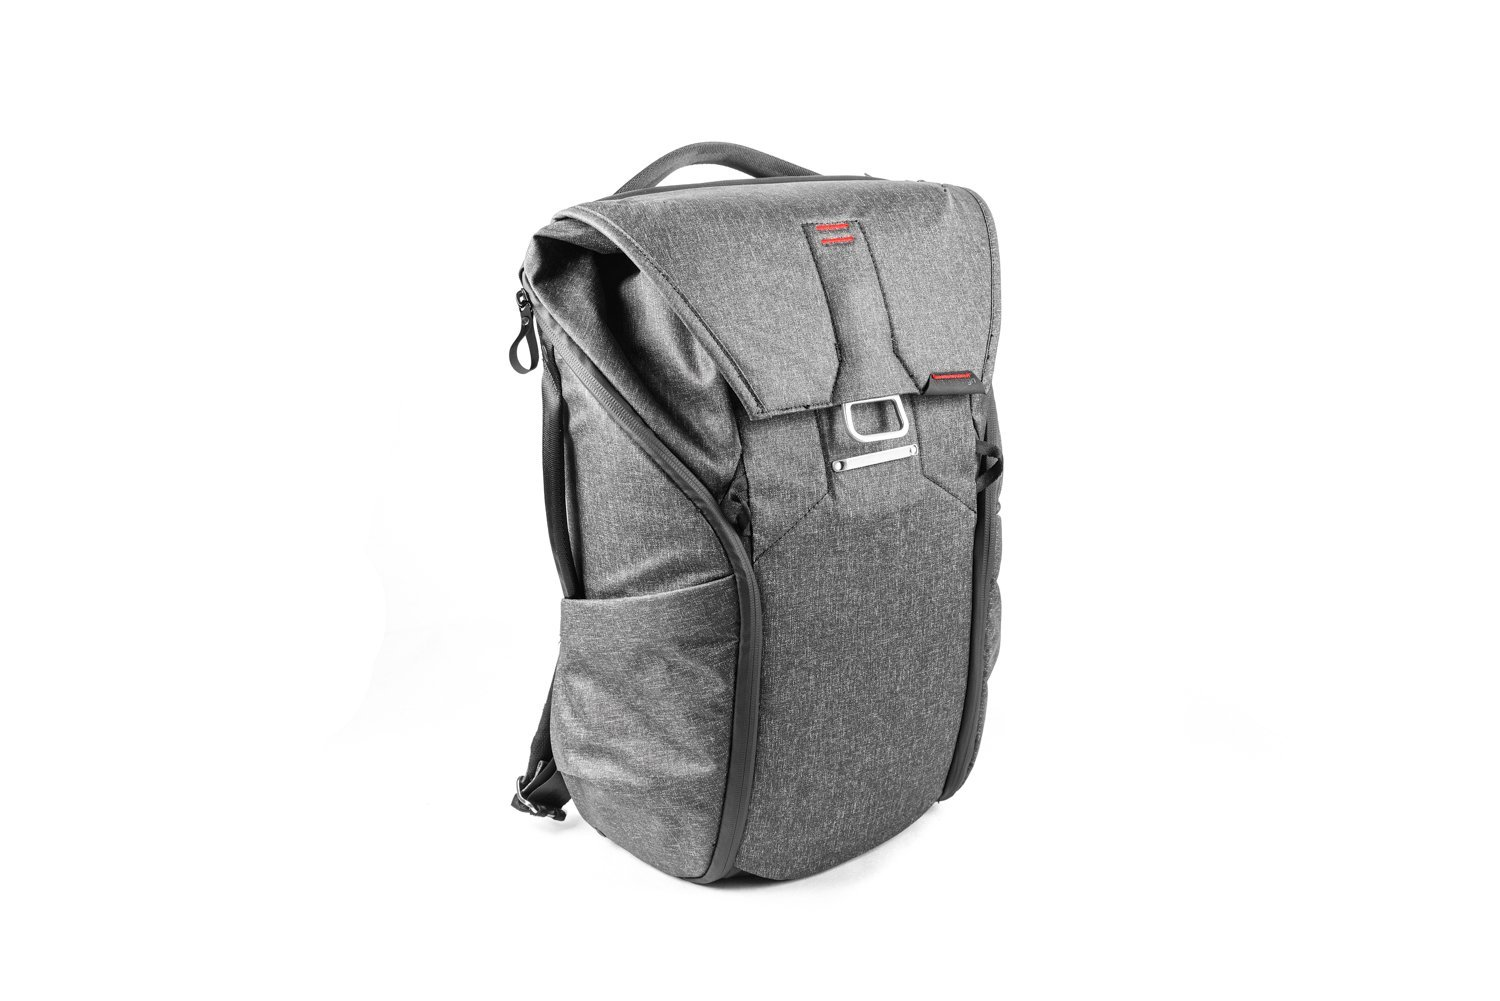 Camera Backpack - $260